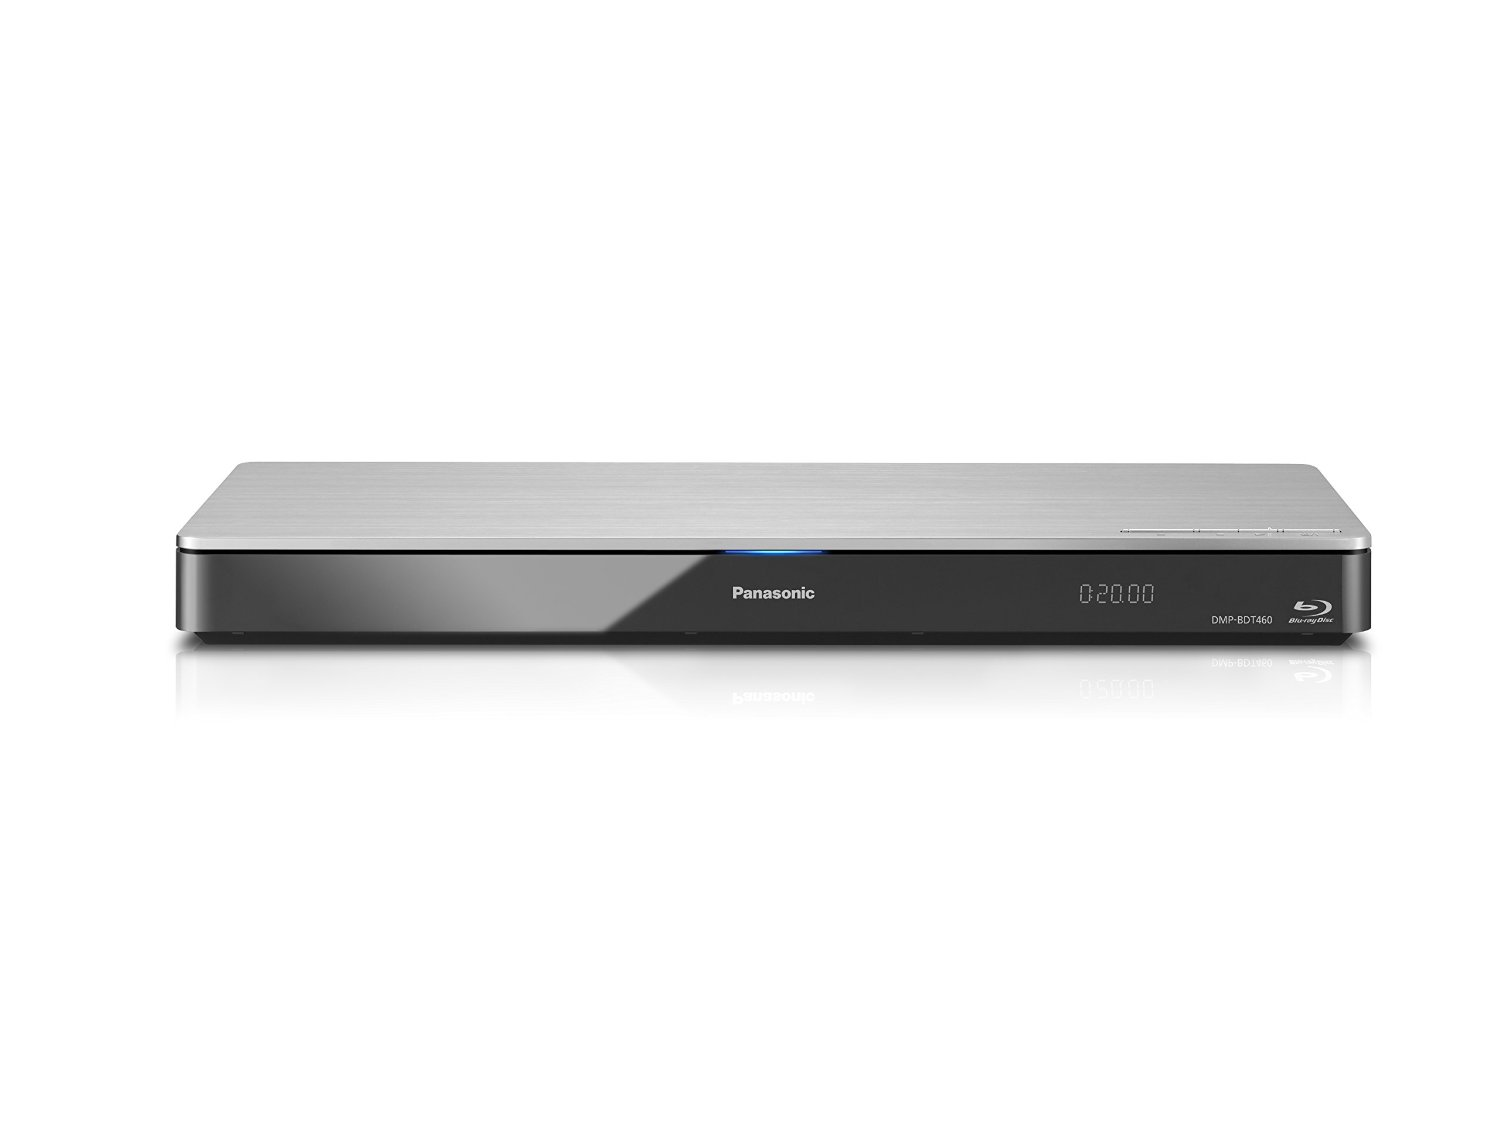 Panasonic DMP-BDT460 Smart Network 4K Upscaling 3D Blu-Ray Disc and Streaming Player -  WiFi, Twin HDMI, Miracast for Smartphone